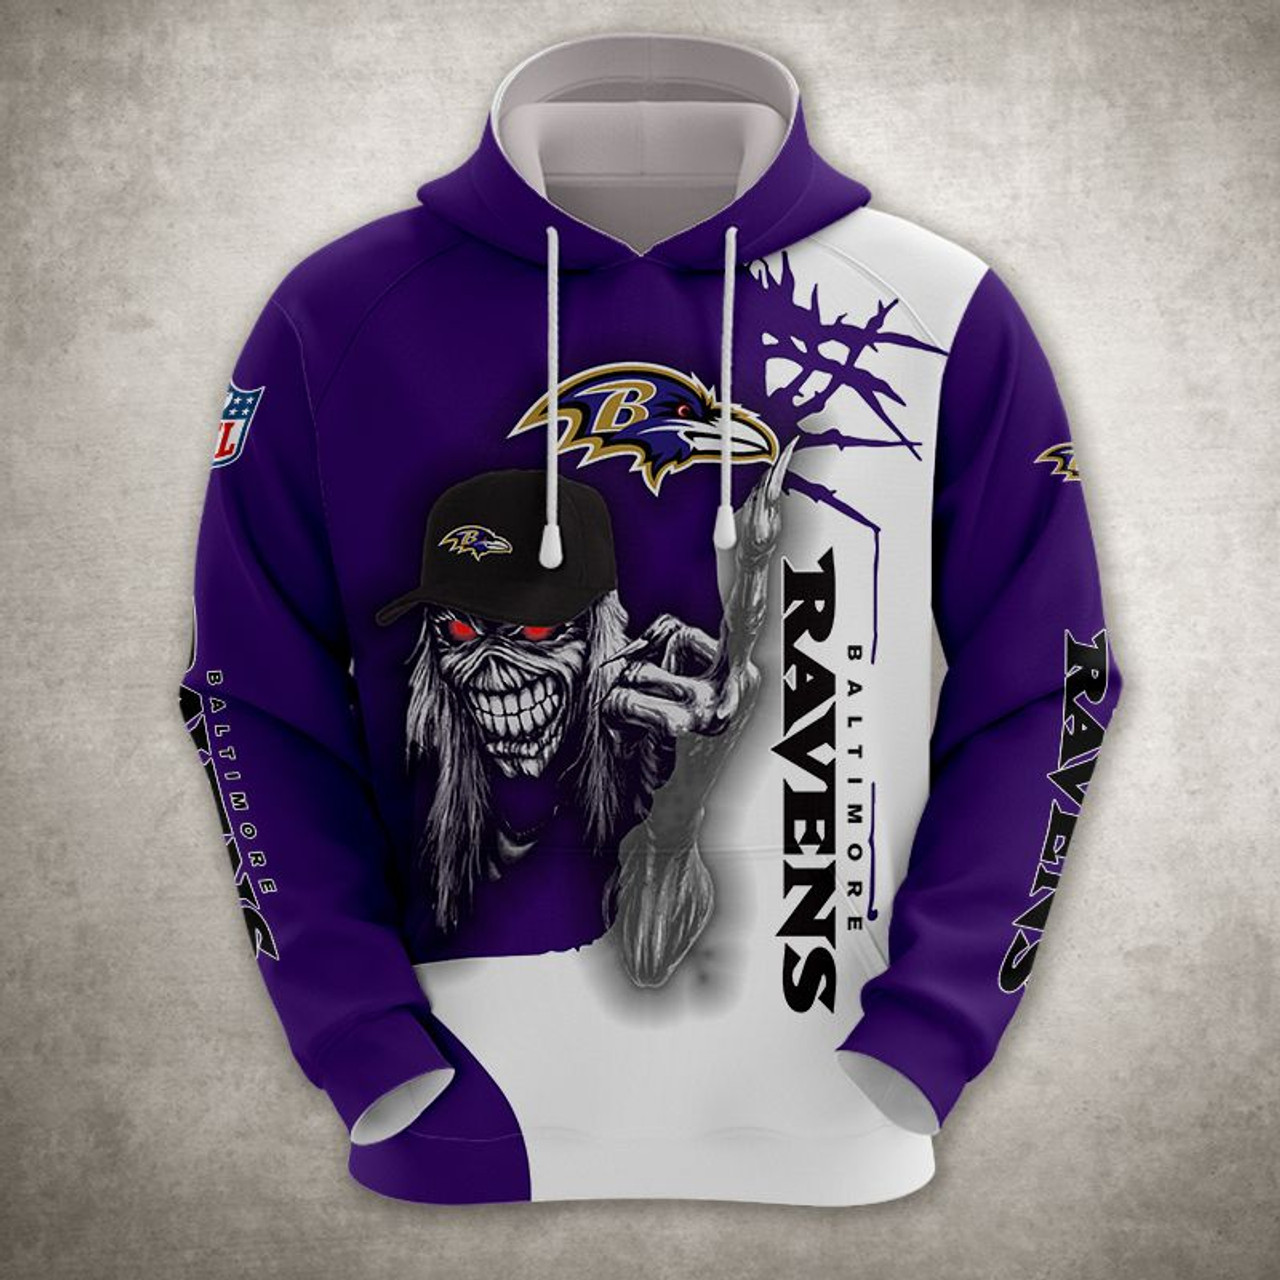 **(OFFICIAL-N.F.L.BALTIMORE-RAVENS-TRENDY-PULLOVER-HOODIE & RAVENS-MUMMIFIED-SKELETON/NICE-CUSTOM-3D-EFFECT-GRAPHIC-PRINTED-ALL-OVER-DOUBLE-SIDED-DESIGNED/OFFICIAL-RAVENS-TEAM-COLORS & OFFICIAL-RAVENS-TEAM-LOGOS/WARM-PREMIUM-PULLOVER-HOODIES)**